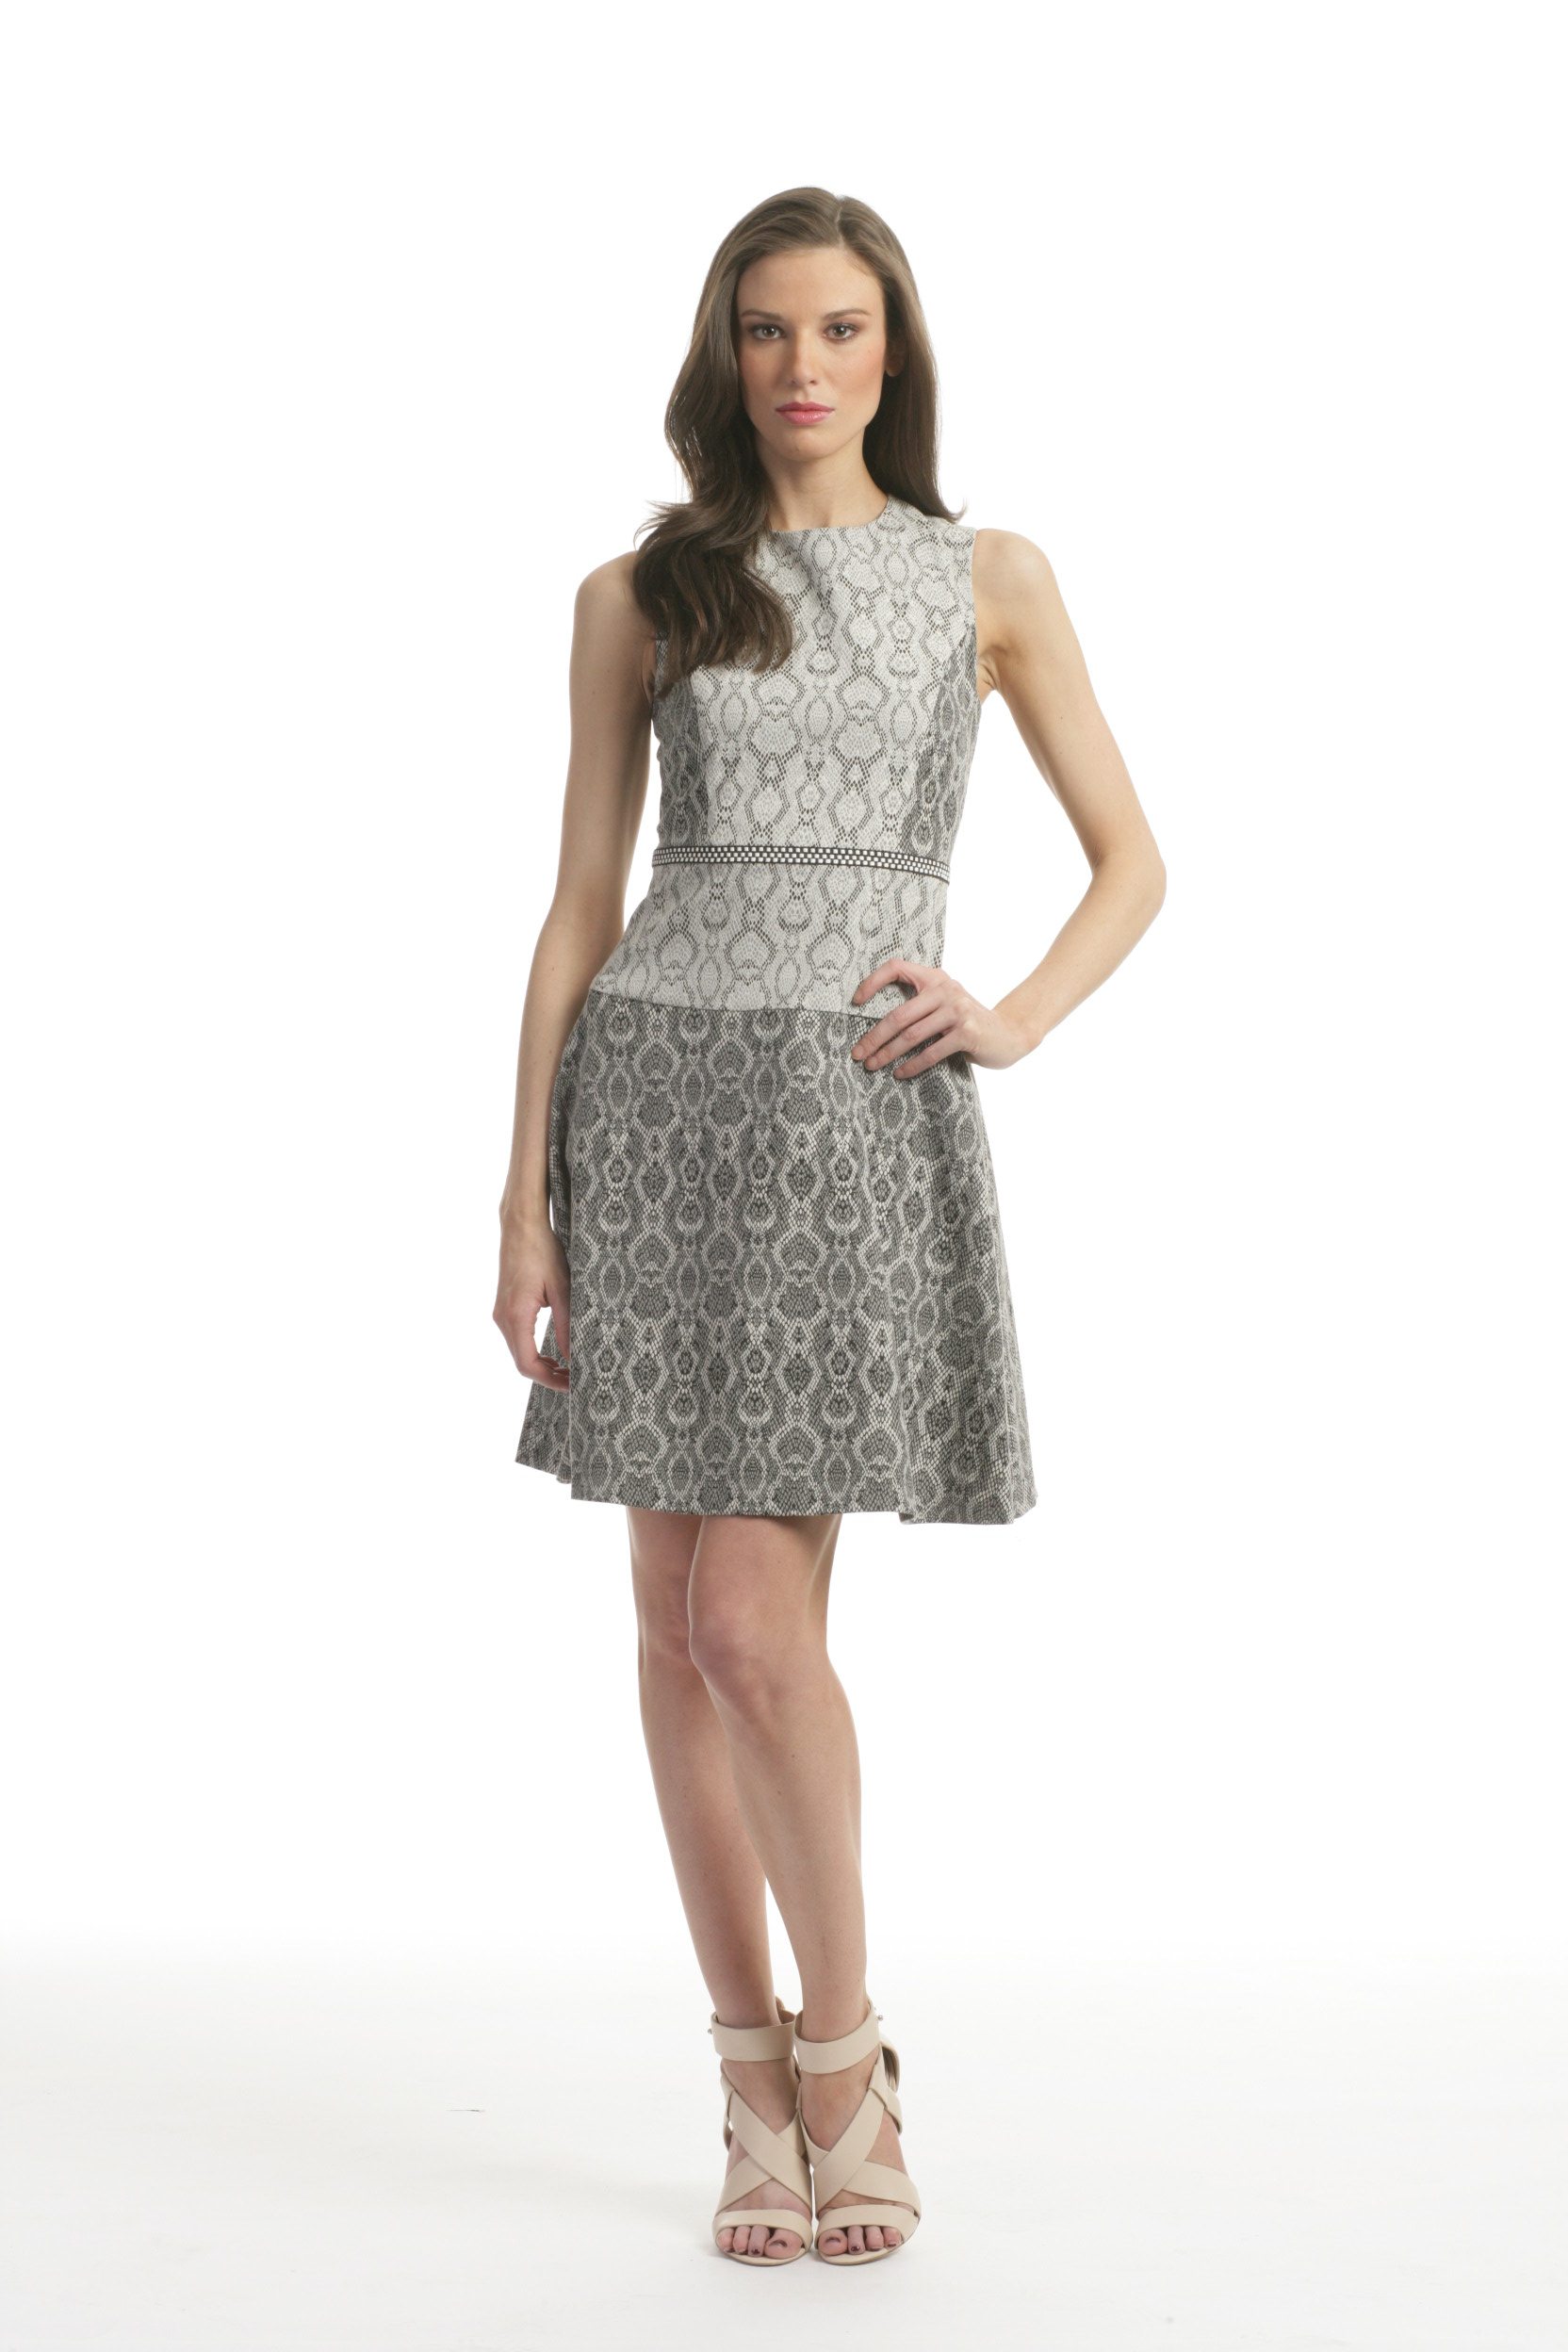 About Melanie Lyne When you shop from Melanie Lyne, you will find elegant designs to fill all of your wardrobe needs. Their clothing line includes terrific blouses, tops, .